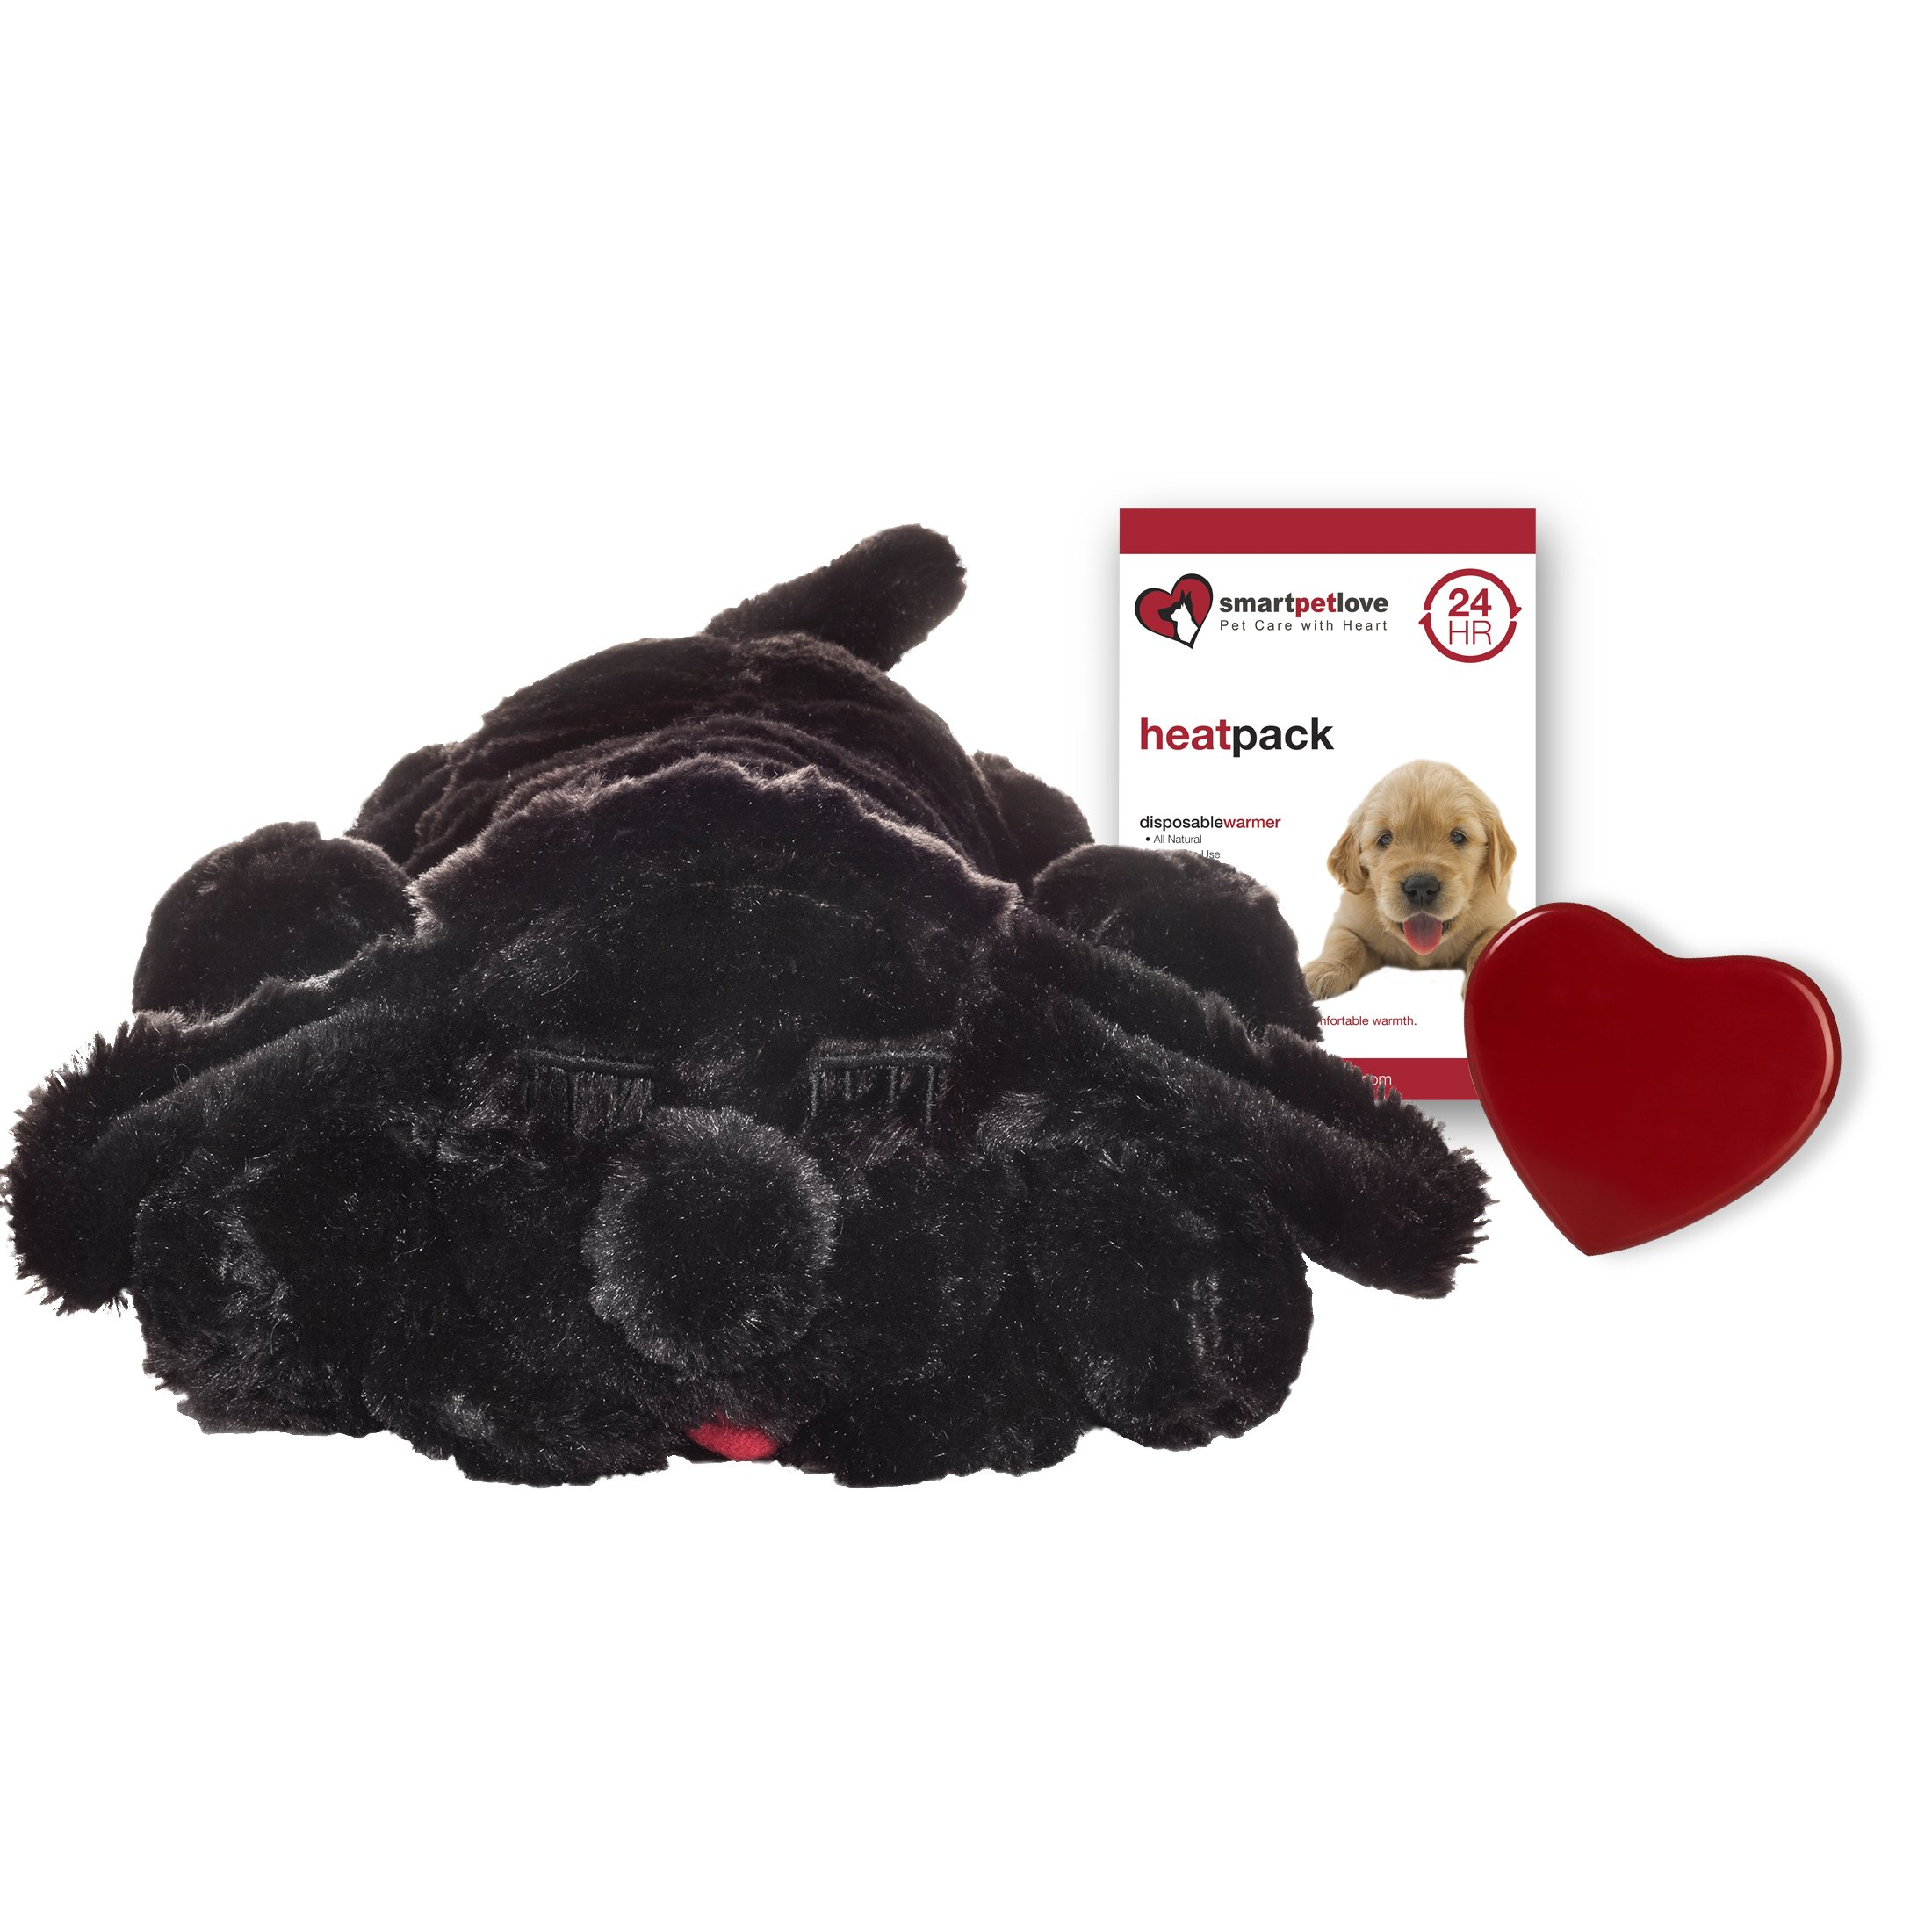 Smart Pet Love Snuggle Puppy Behavioral Aid Toy, Black Lab